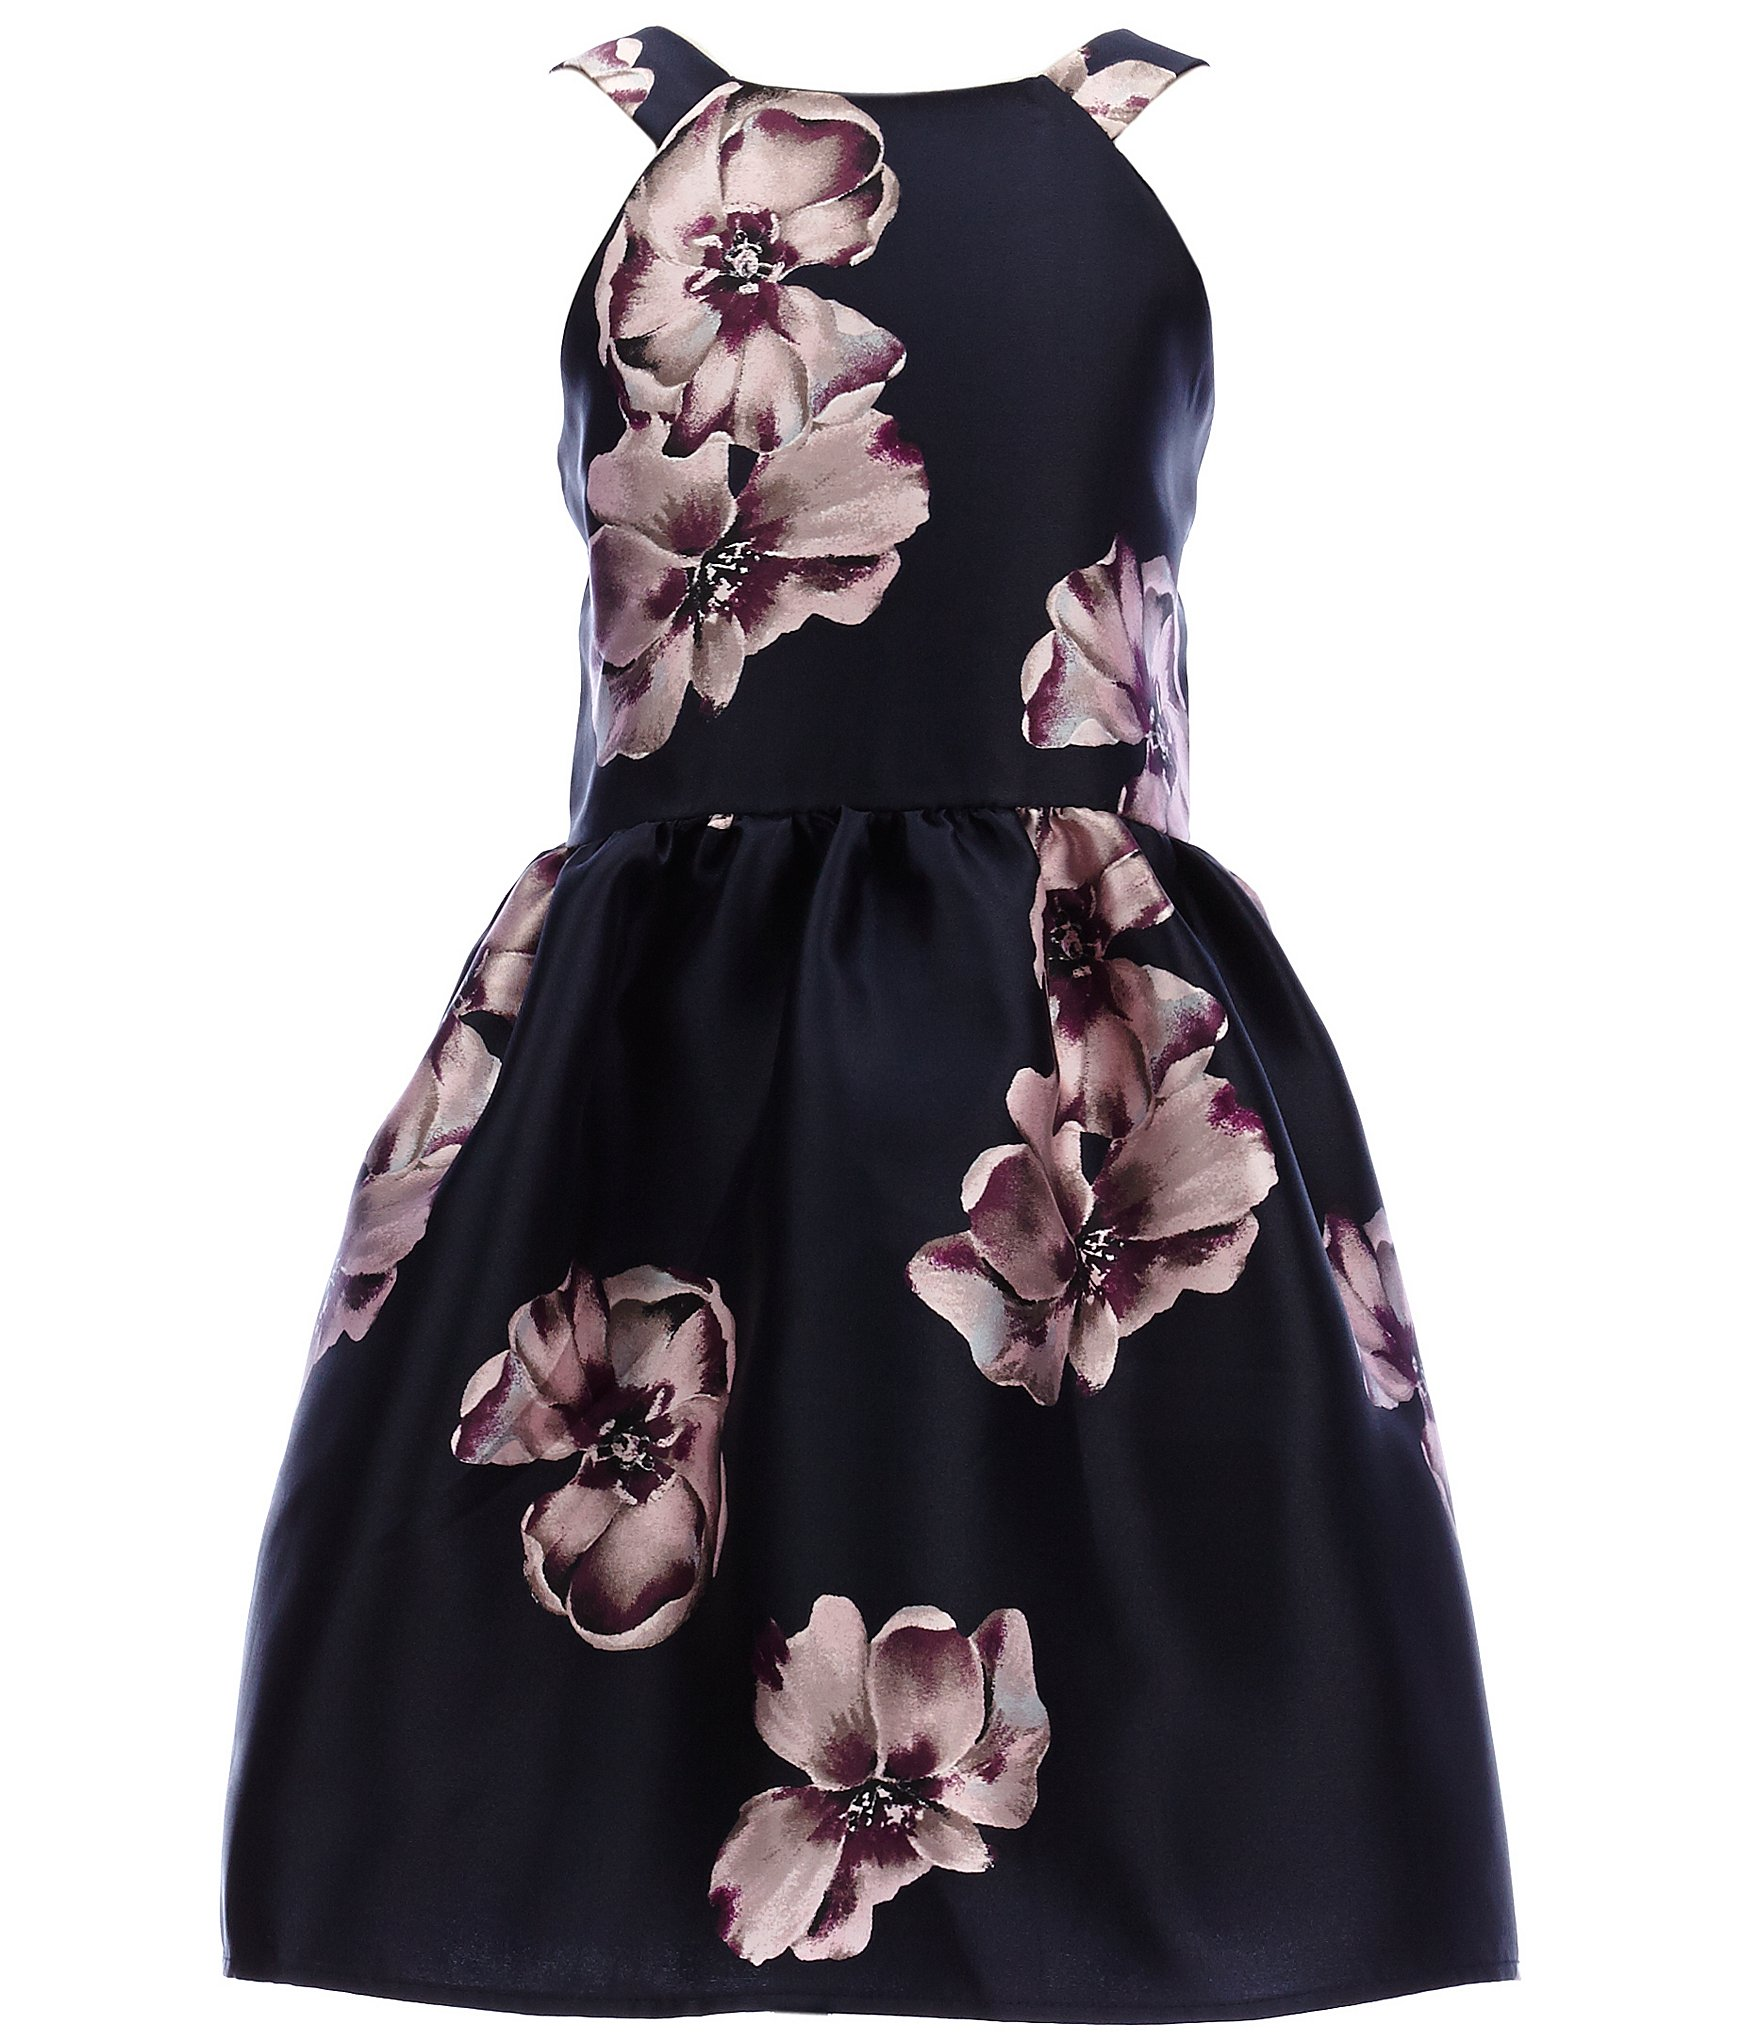 macys dresses girls photo - 1